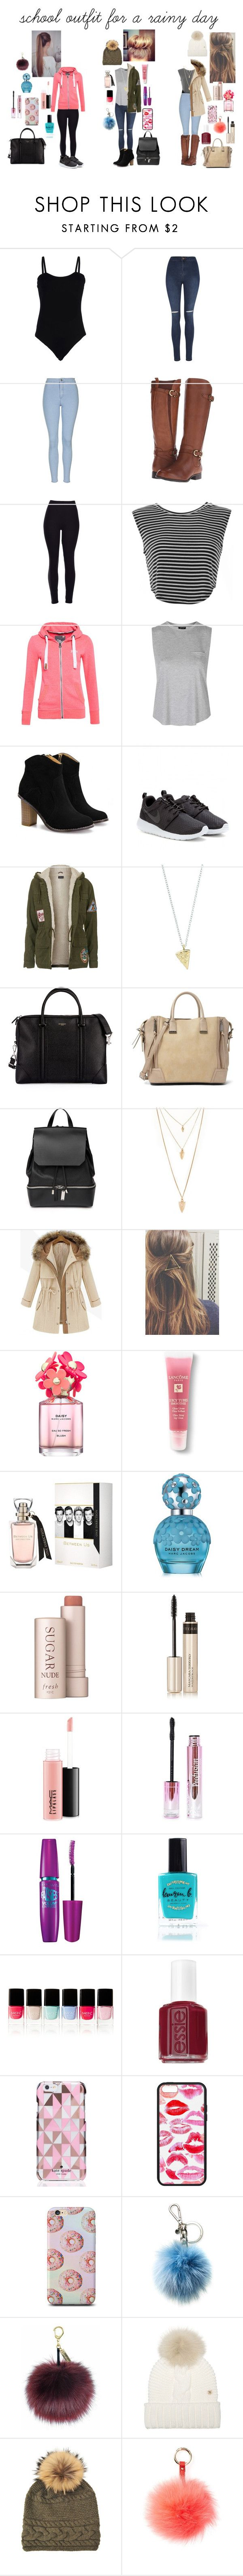 """school outfit for a rainy day"" by anouklagae on Polyvore featuring Baguette....., George, Topshop, Naturalizer, Superdry, NIKE, Givenchy, Steve Madden, COSTUME NATIONAL and Forever 21"